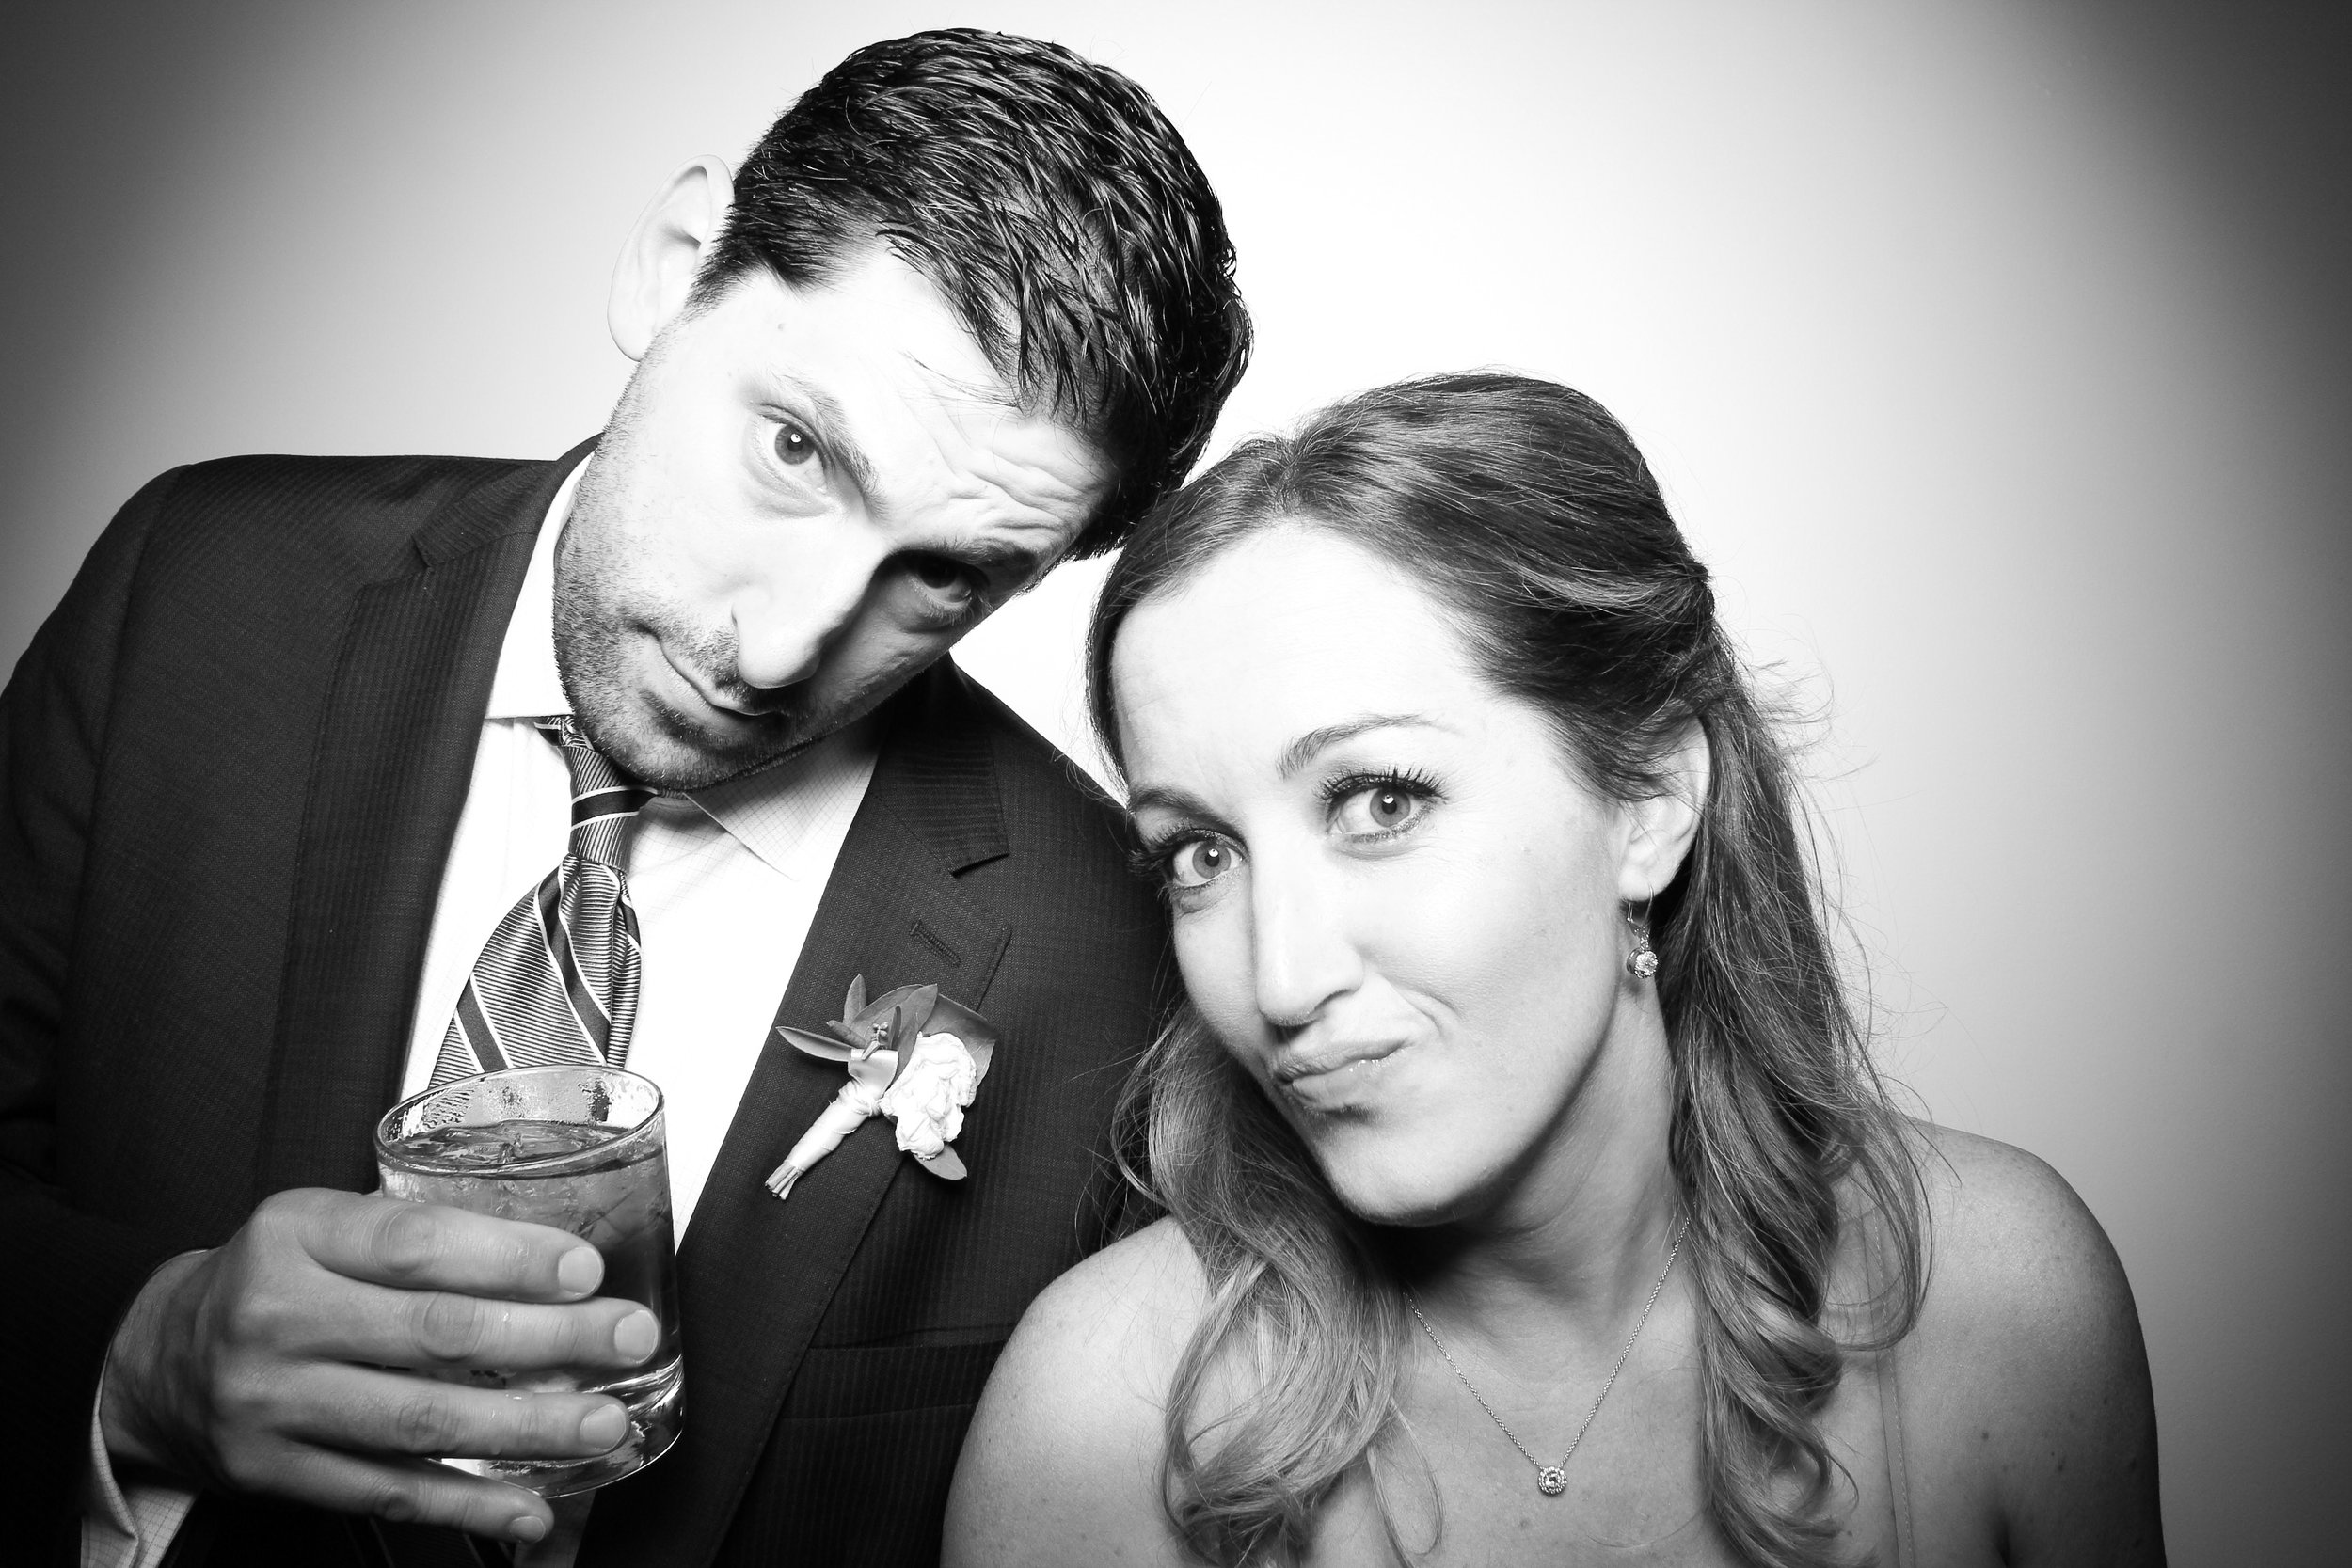 Chicago_Vintage_Wedding_Photobooth_Ravenswood_21.jpg